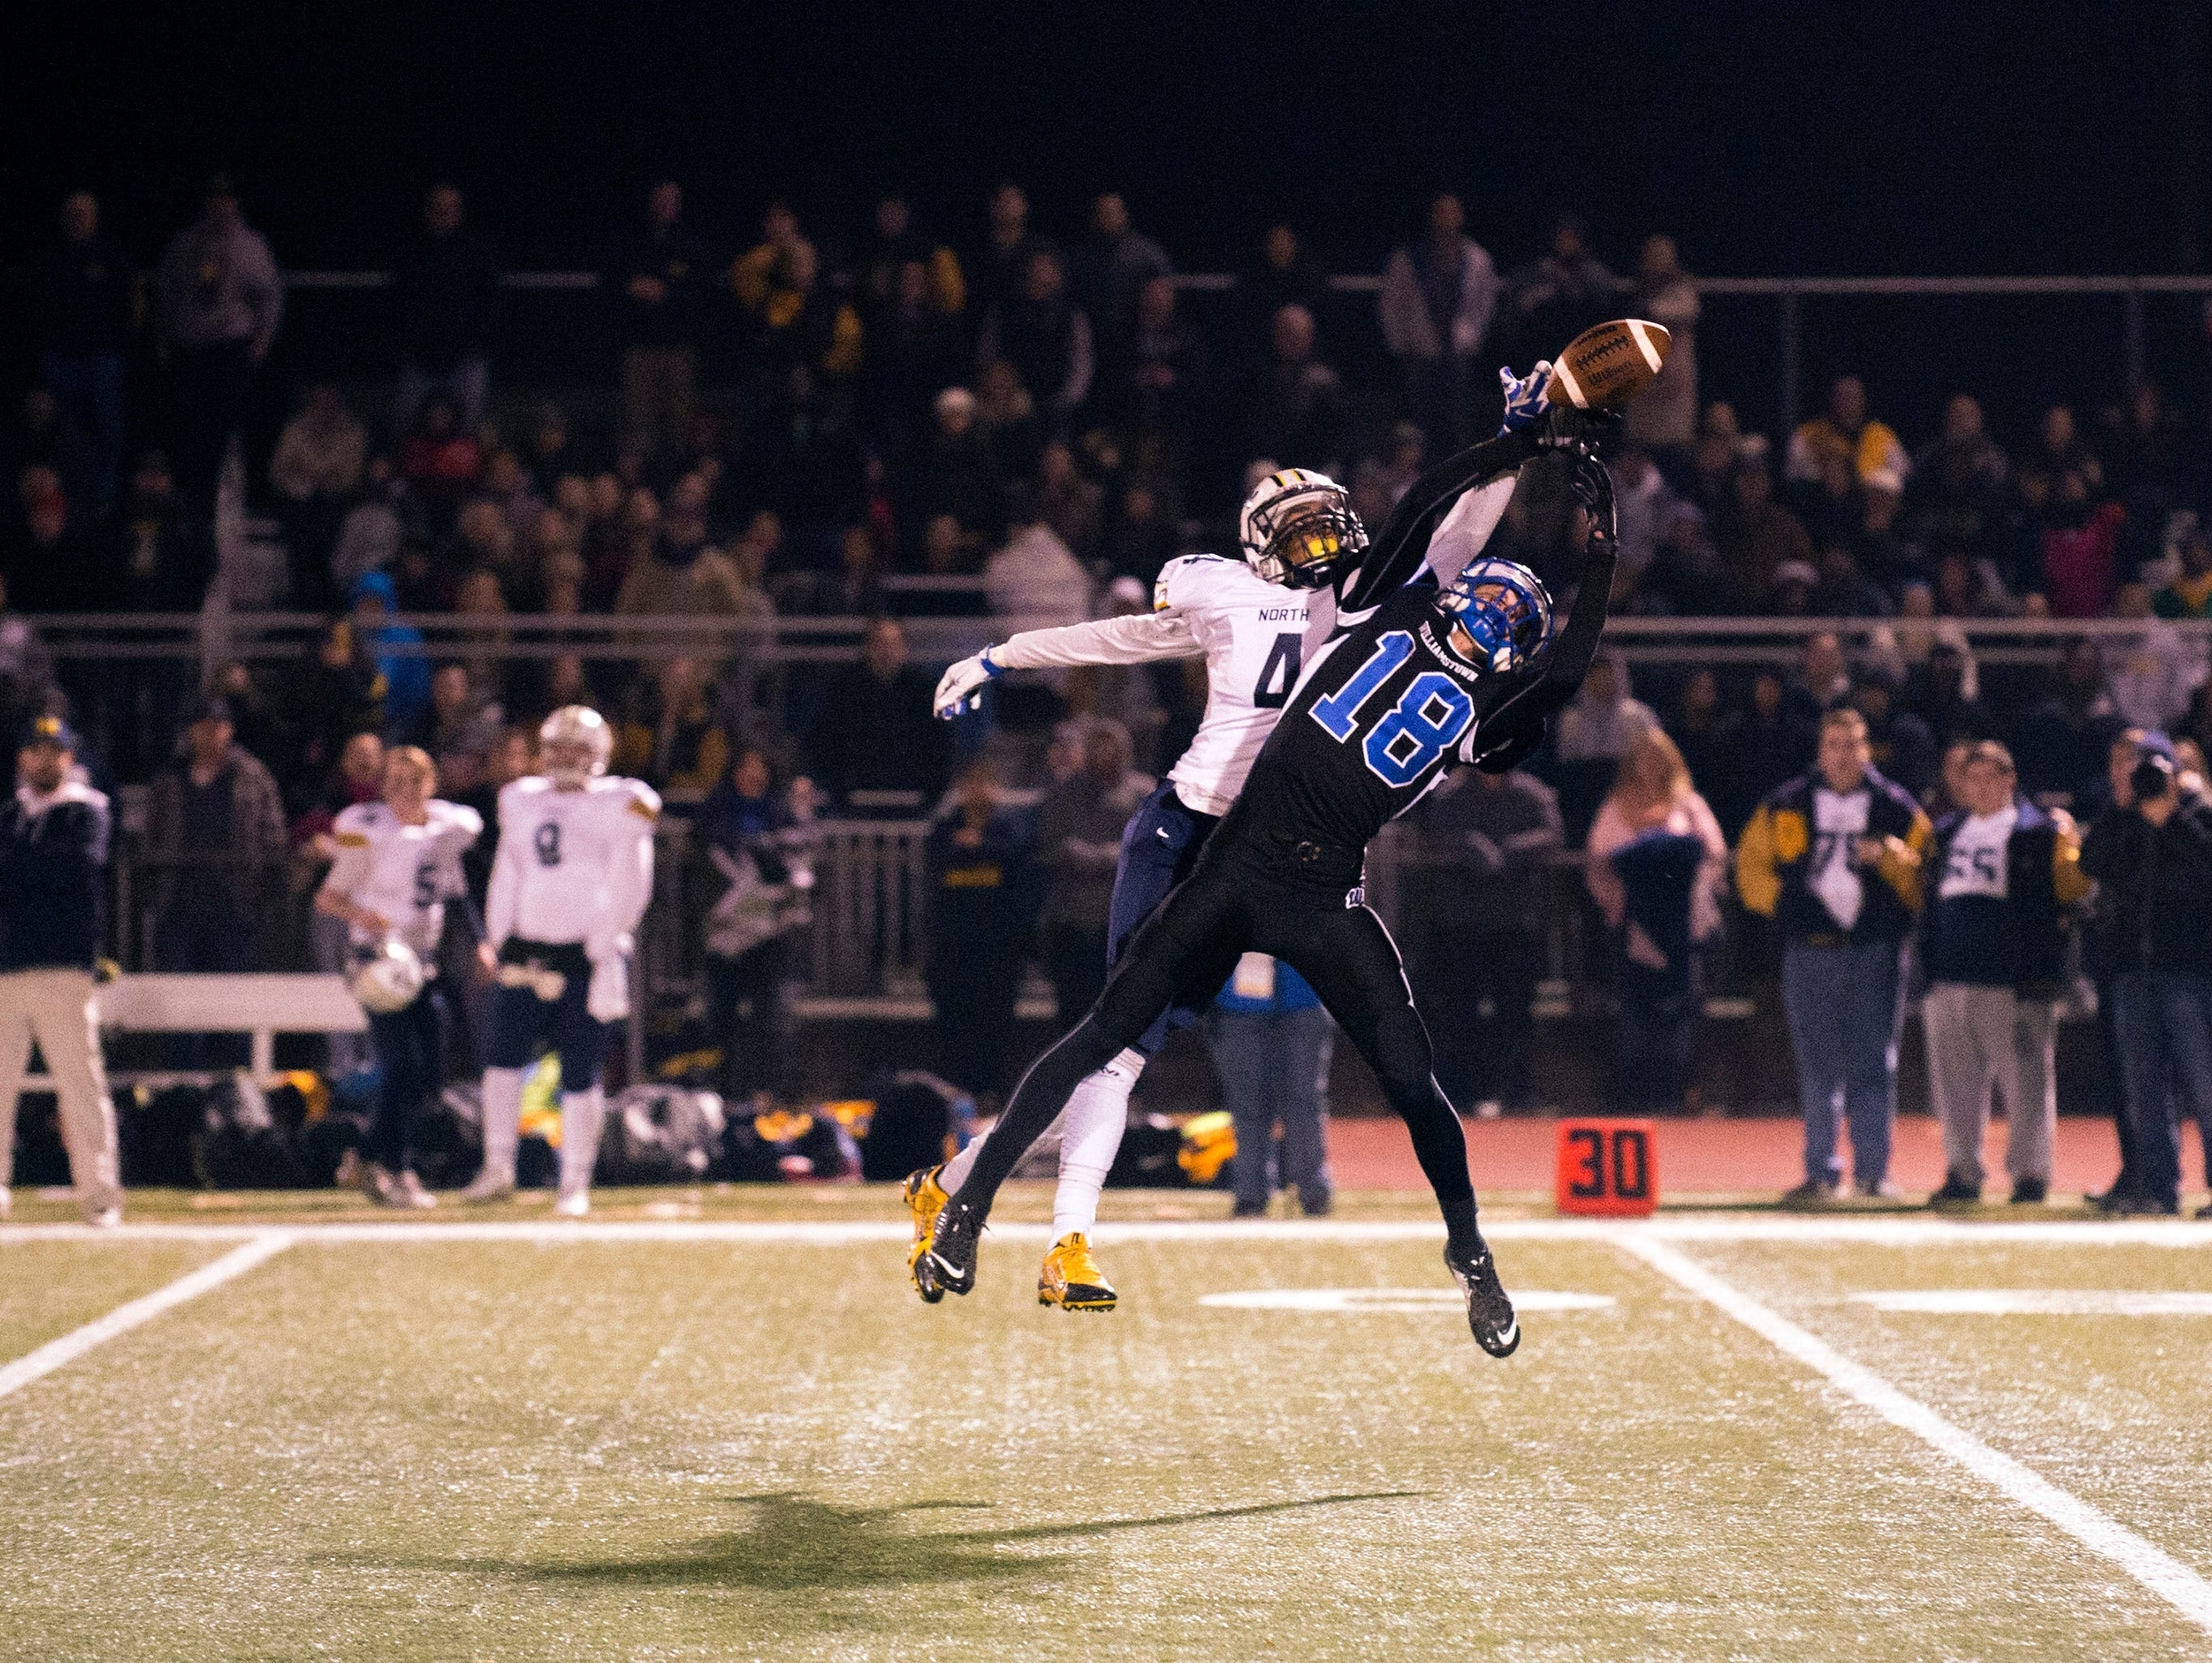 Toms River North's Darrion Carrington (4) breaks up a pass intended for Williamstown's Victor Ruggiano (18) Saturday, Dec. 5 at Rowan University in Glassboro. Toms River North won 14-7, claiming the South Jersey Group 5 title.